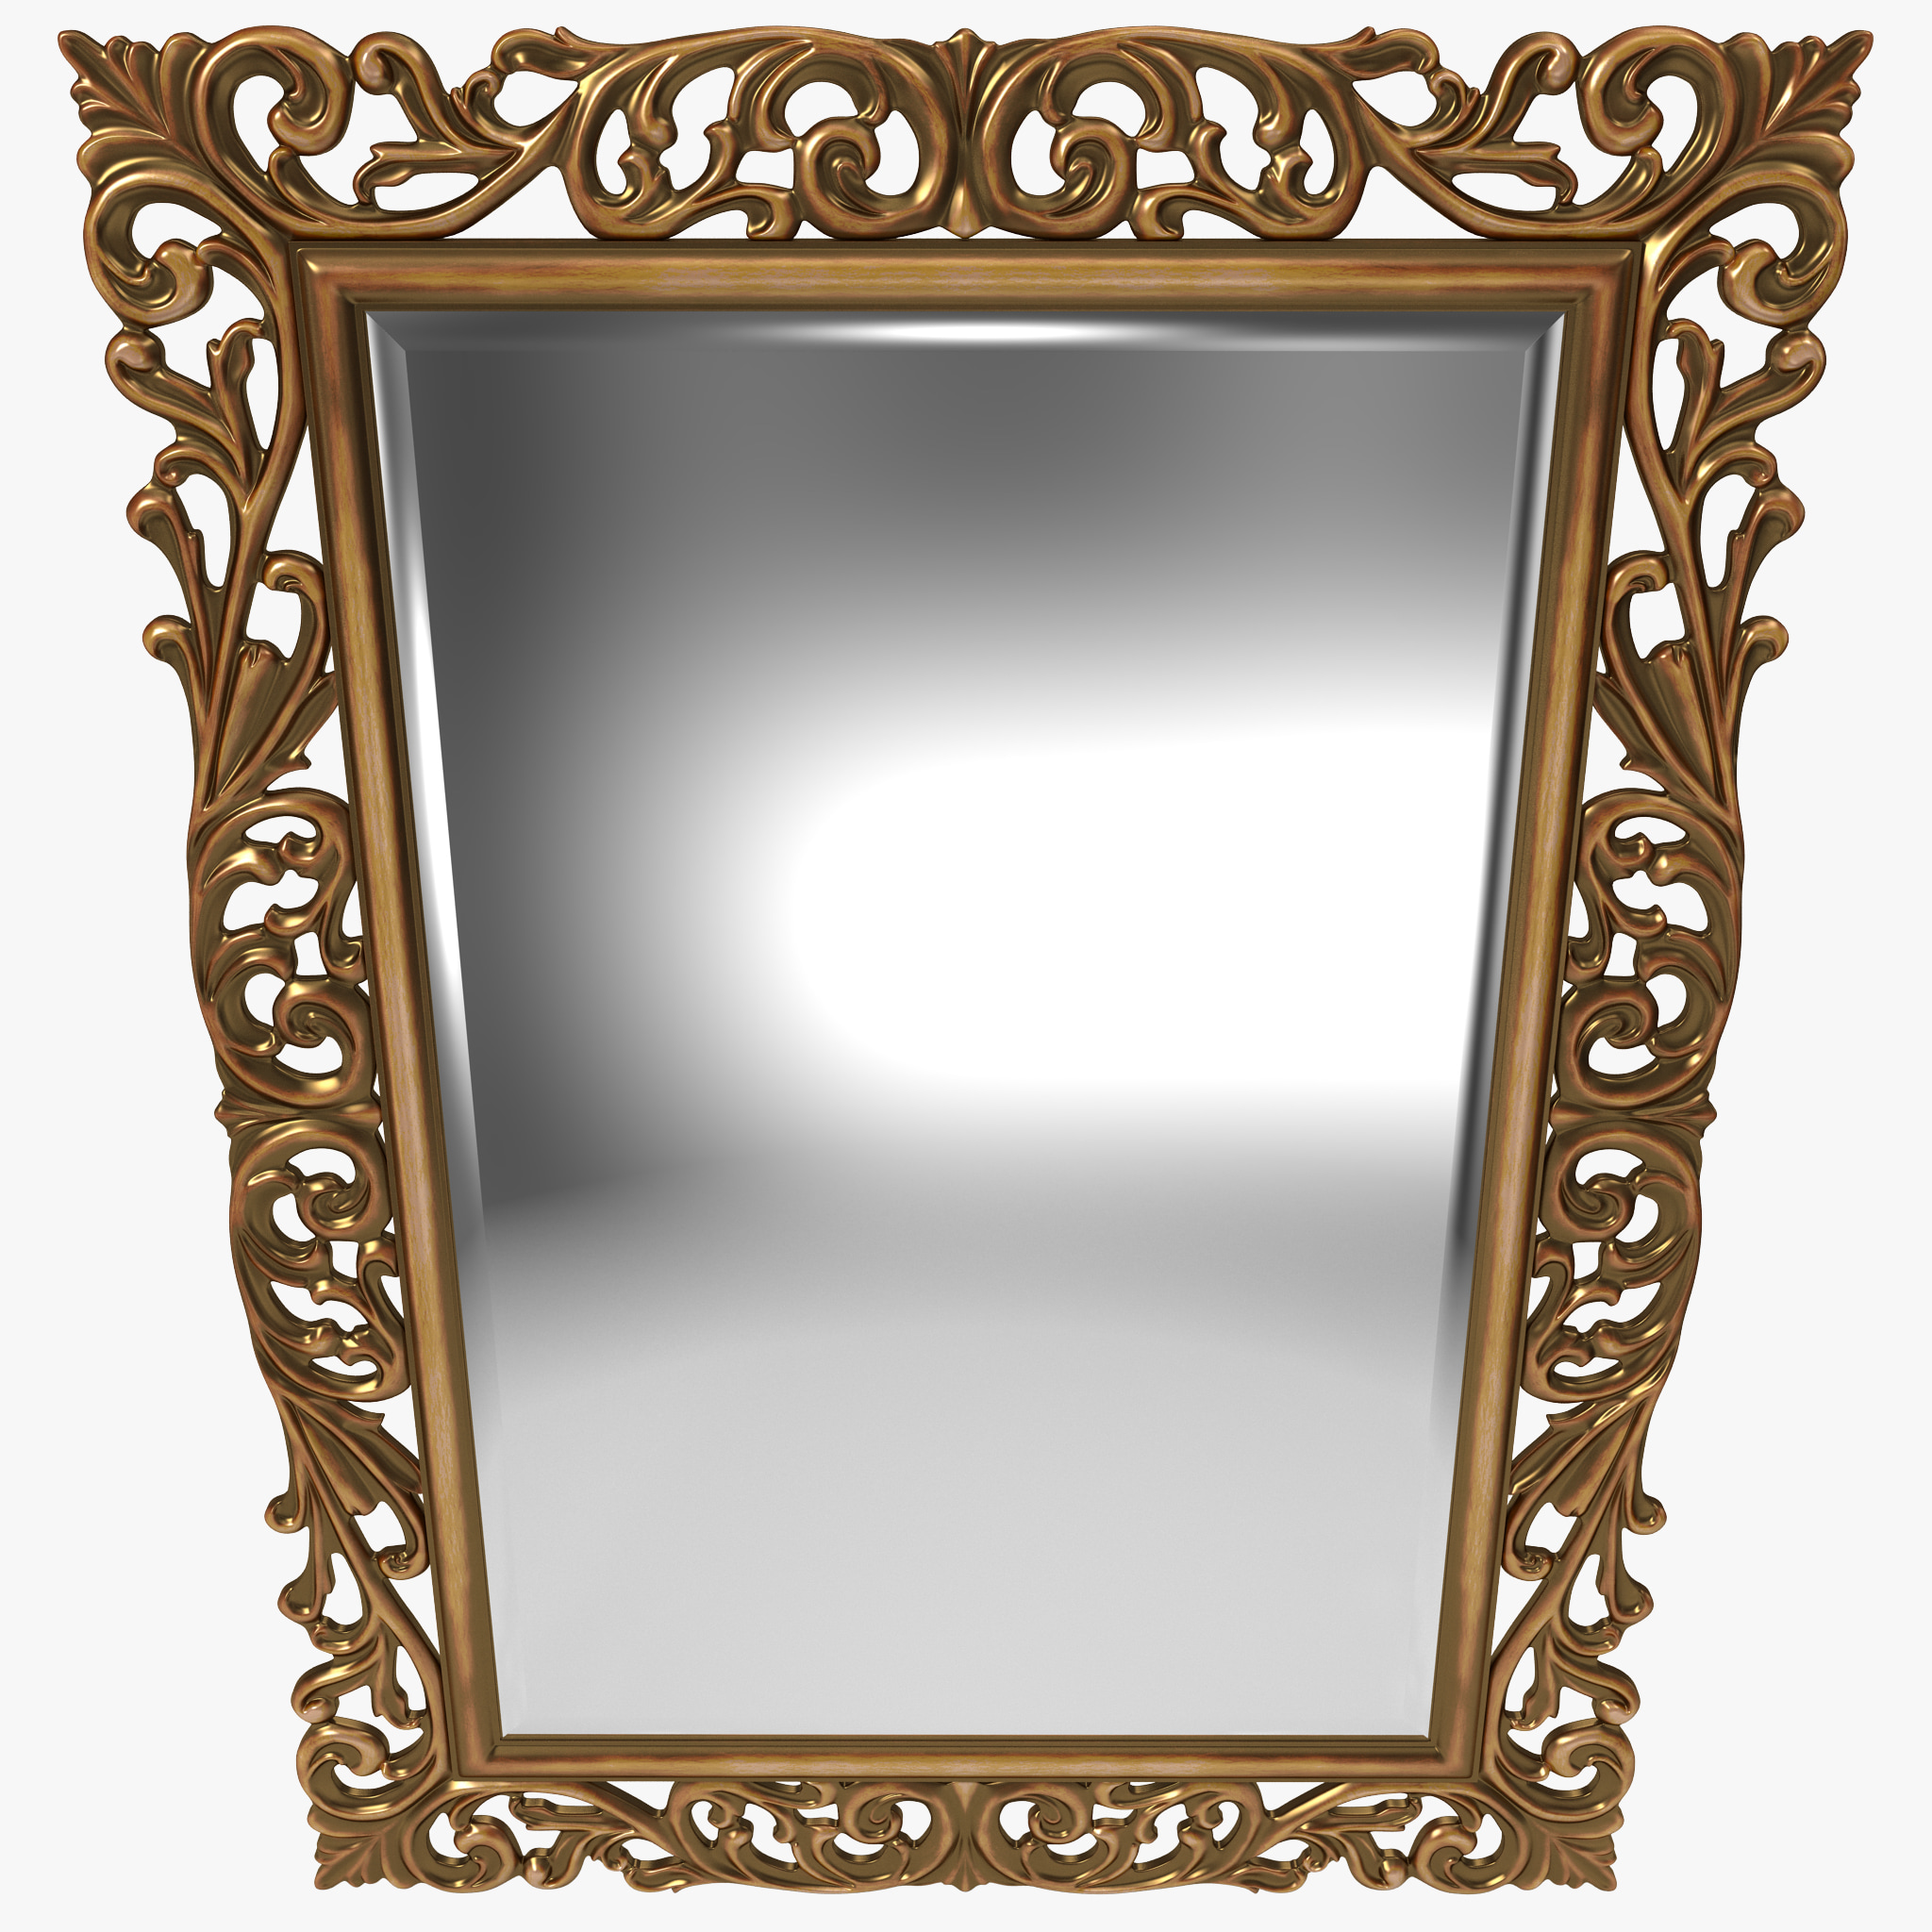 3d gold ornate square mirror for Mirror in sketchup